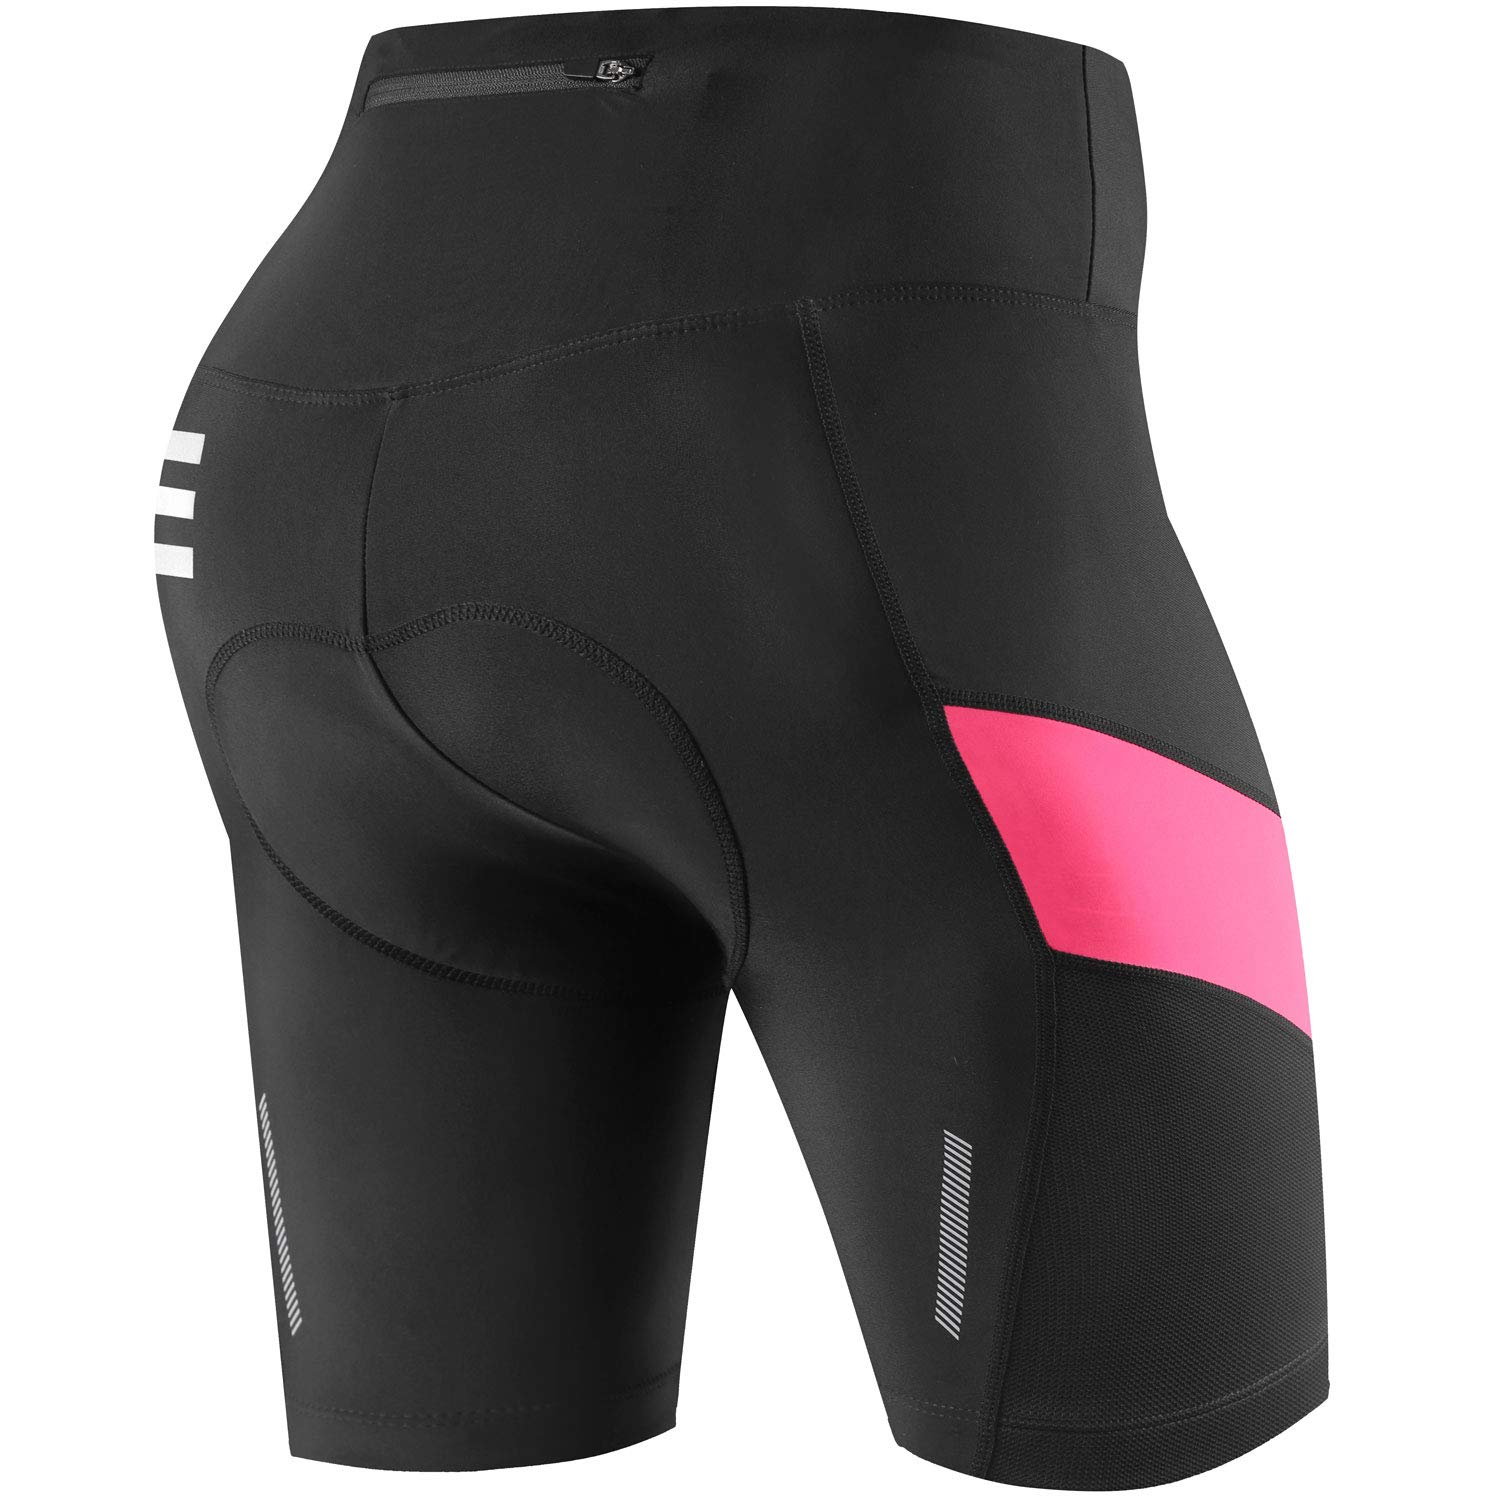 NOOYME Womens Bike Shorts 3D Padded Cycling Short with Ride in Color Design Cycling Shorts with Back Pocket